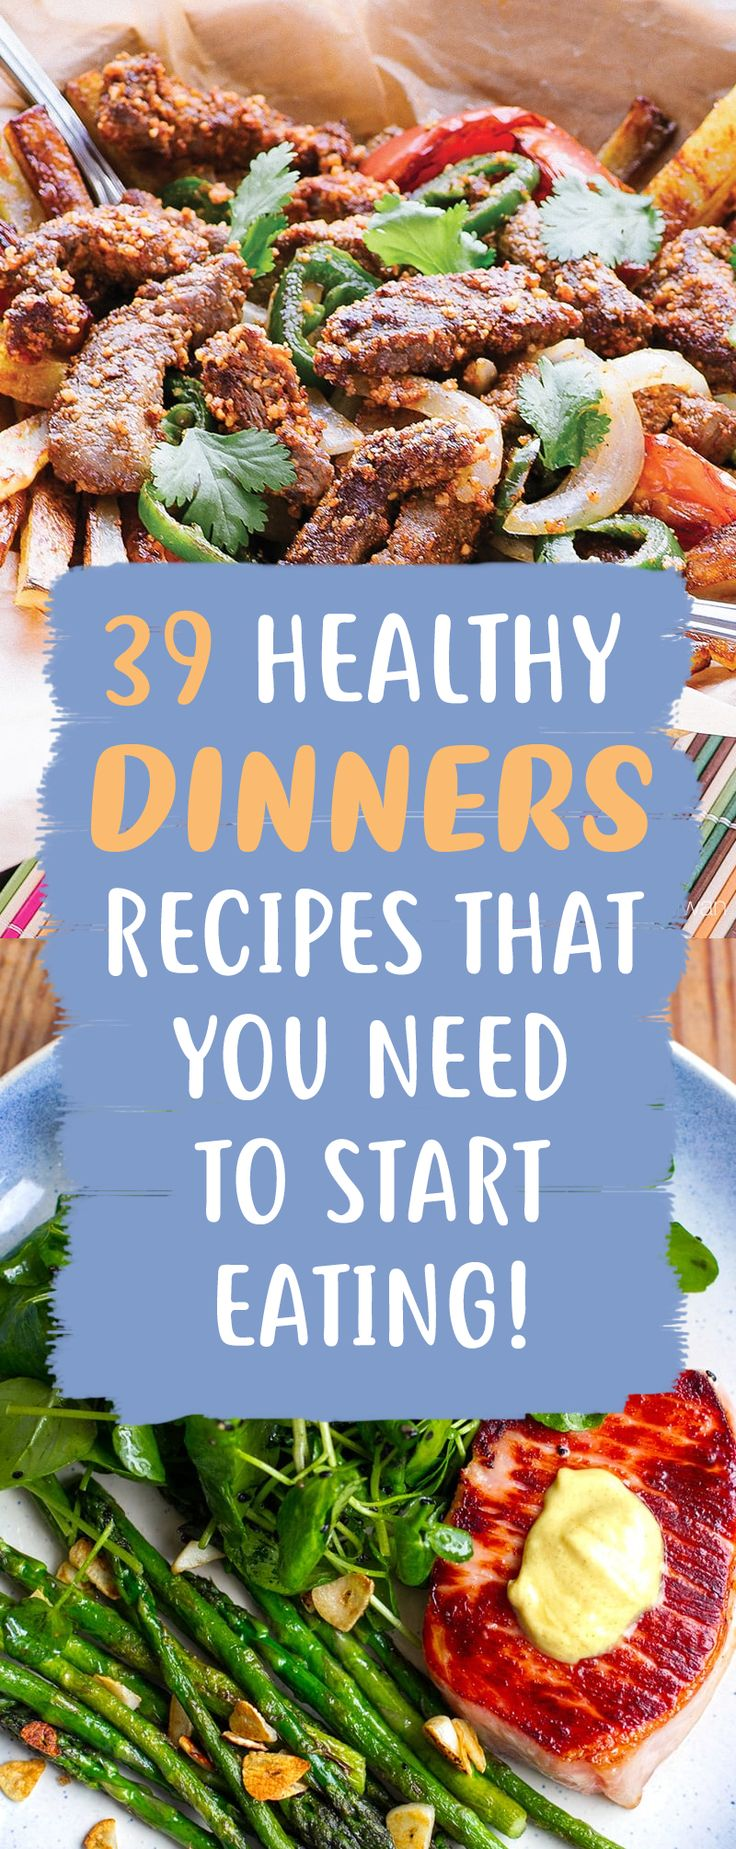 39 Fat Loss Dinner Recipes That You Need To Incorporate In Your Diet!